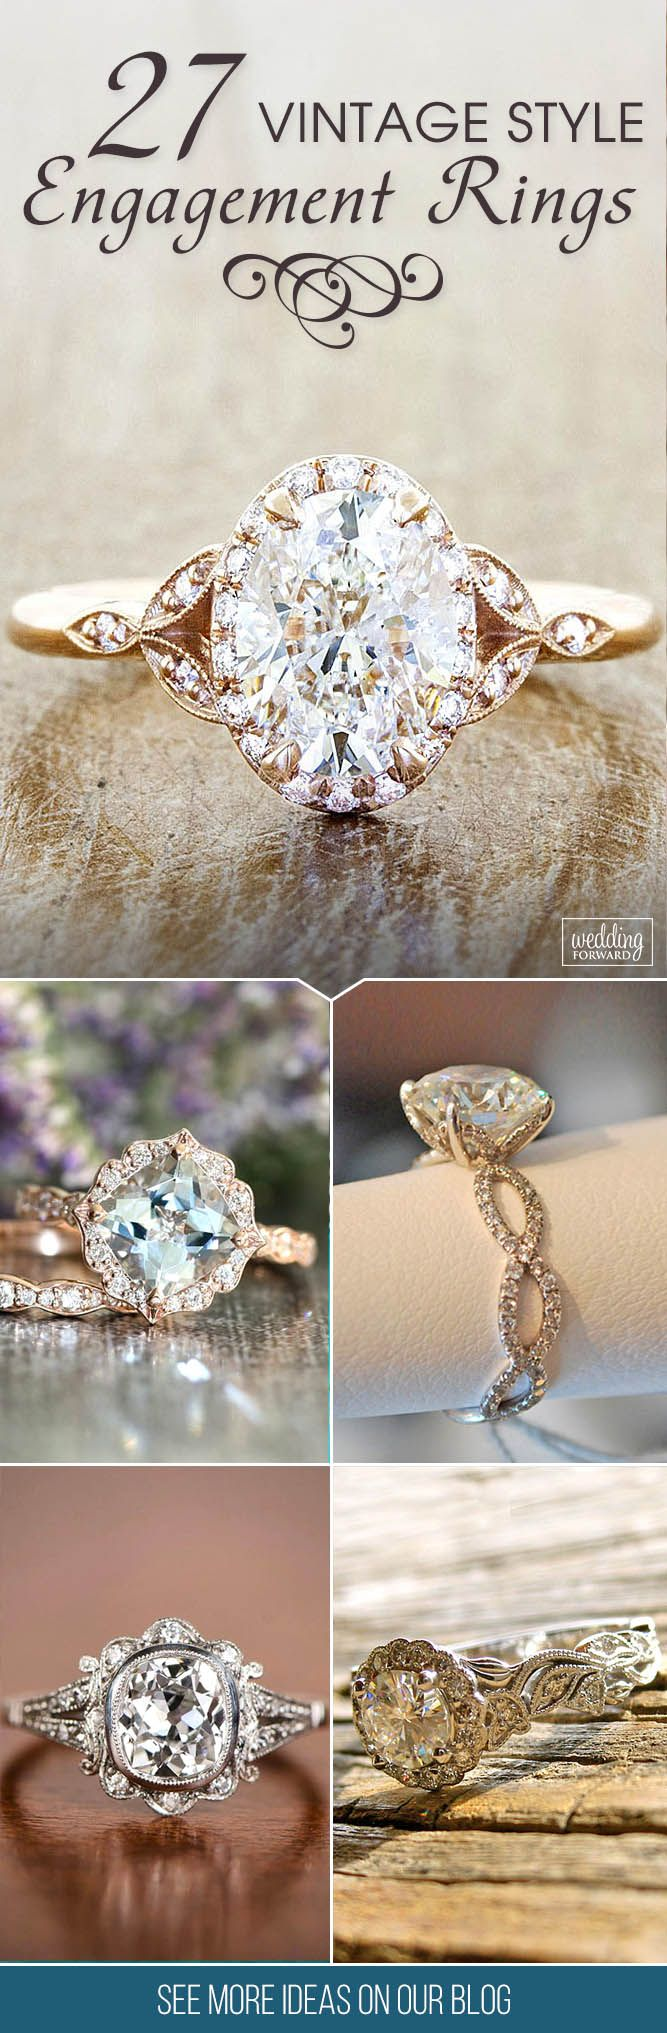 27 Vintage Engagement Rings With Stunning Details ❤ Vintage engagement ring has elegant and romantic shape with sophisticated enchanting details that will be stunning on her finger. See more: http://www.weddingforward.com/vintage-engagement-rings/ #wedding #engagement #rings #vintage